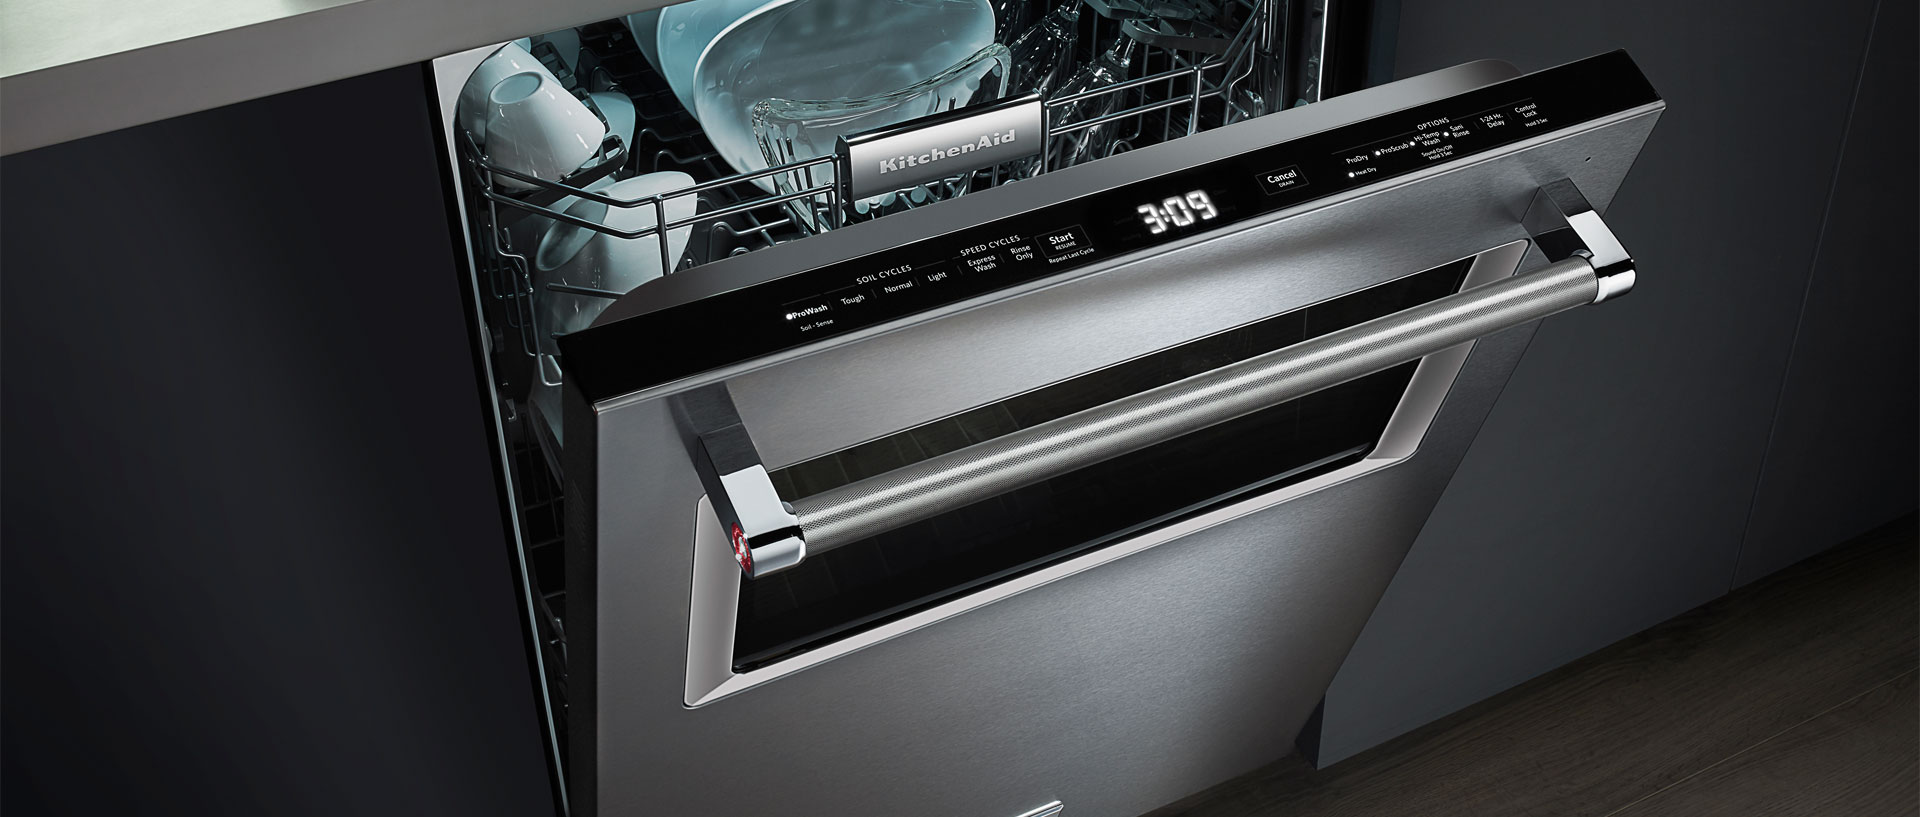 Kitchenaid Dishwasher With Window Consumer Reports